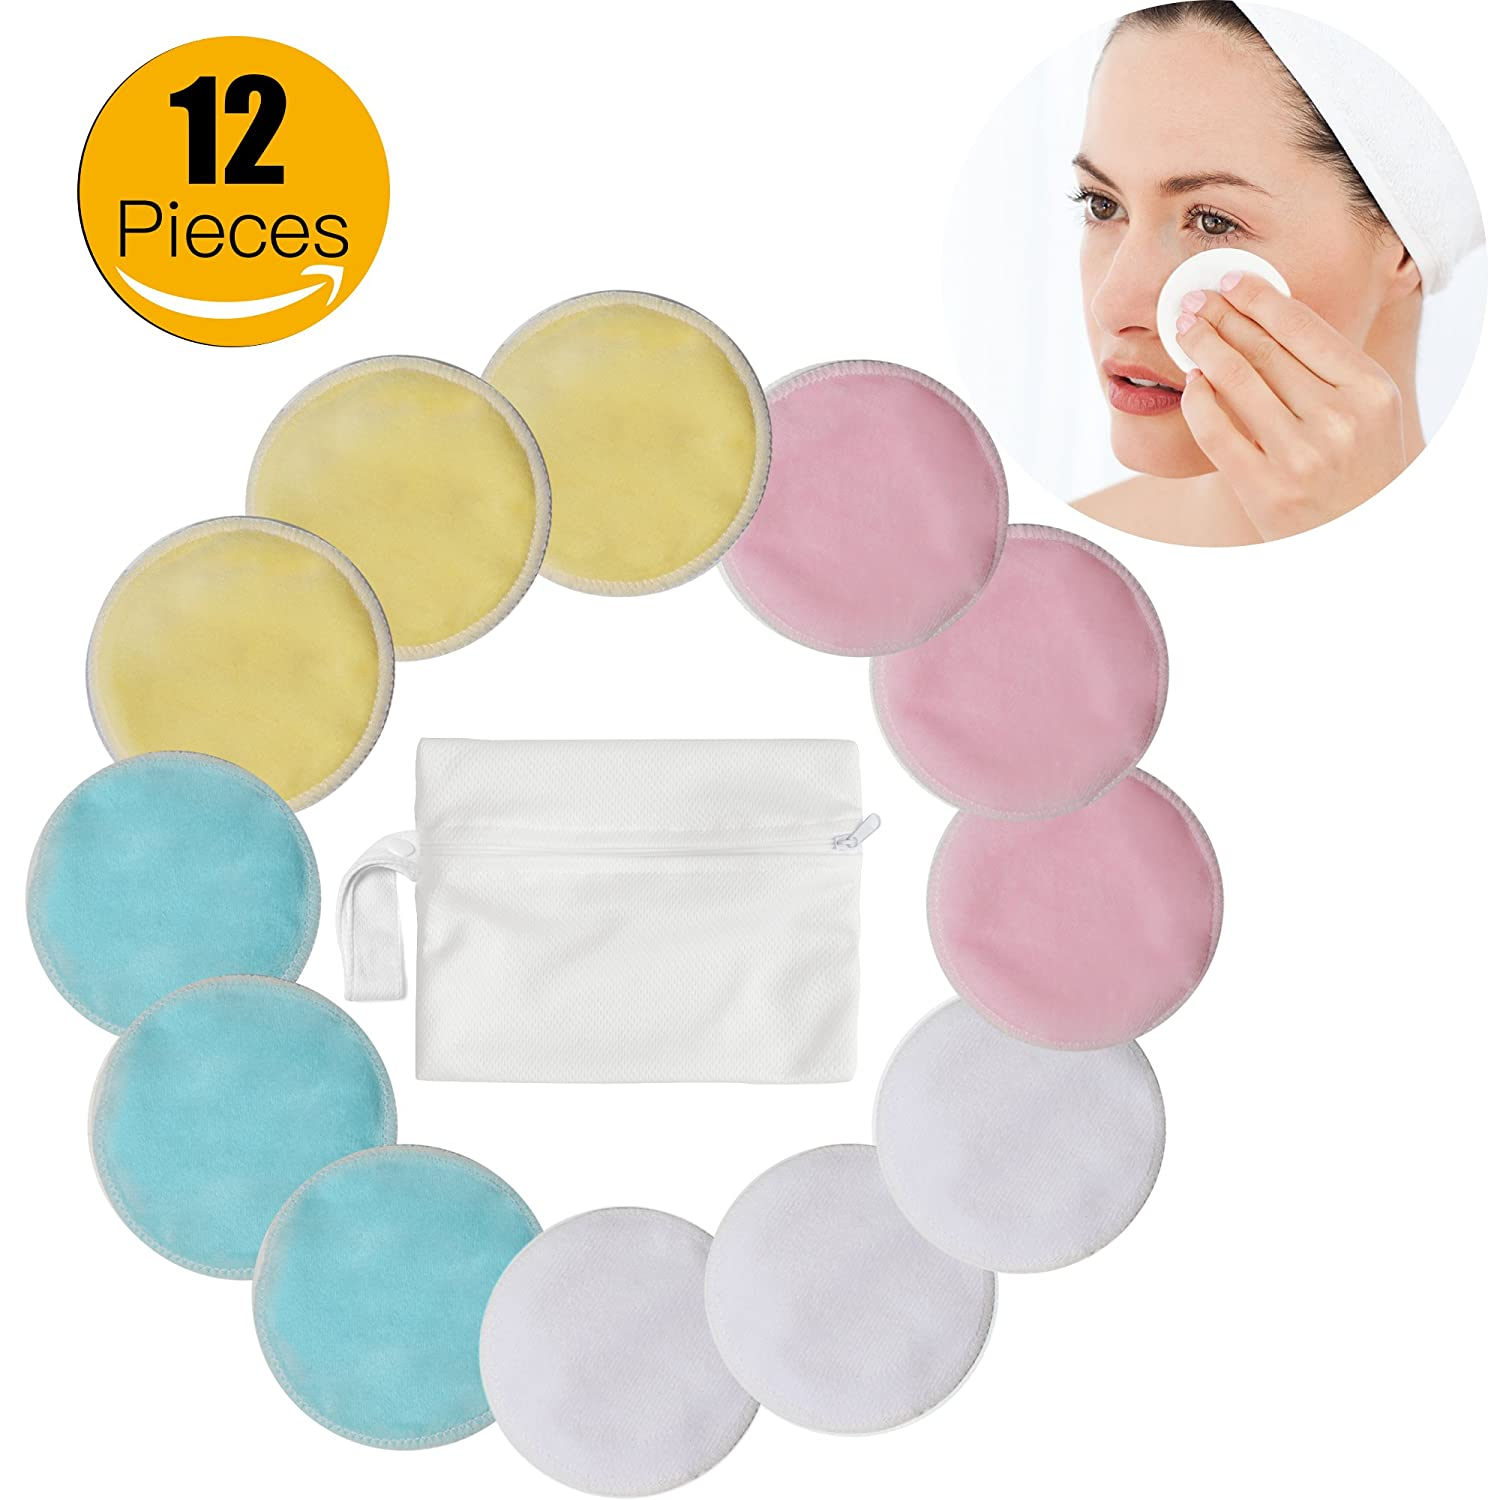 Makeup Remover Pads - Navly Reusable Makeup Soft Remover Cloth,Washable Organic Bamboo Cotton Rounds, Wipes Face/Eye Clean for Women Men(12 Packs)